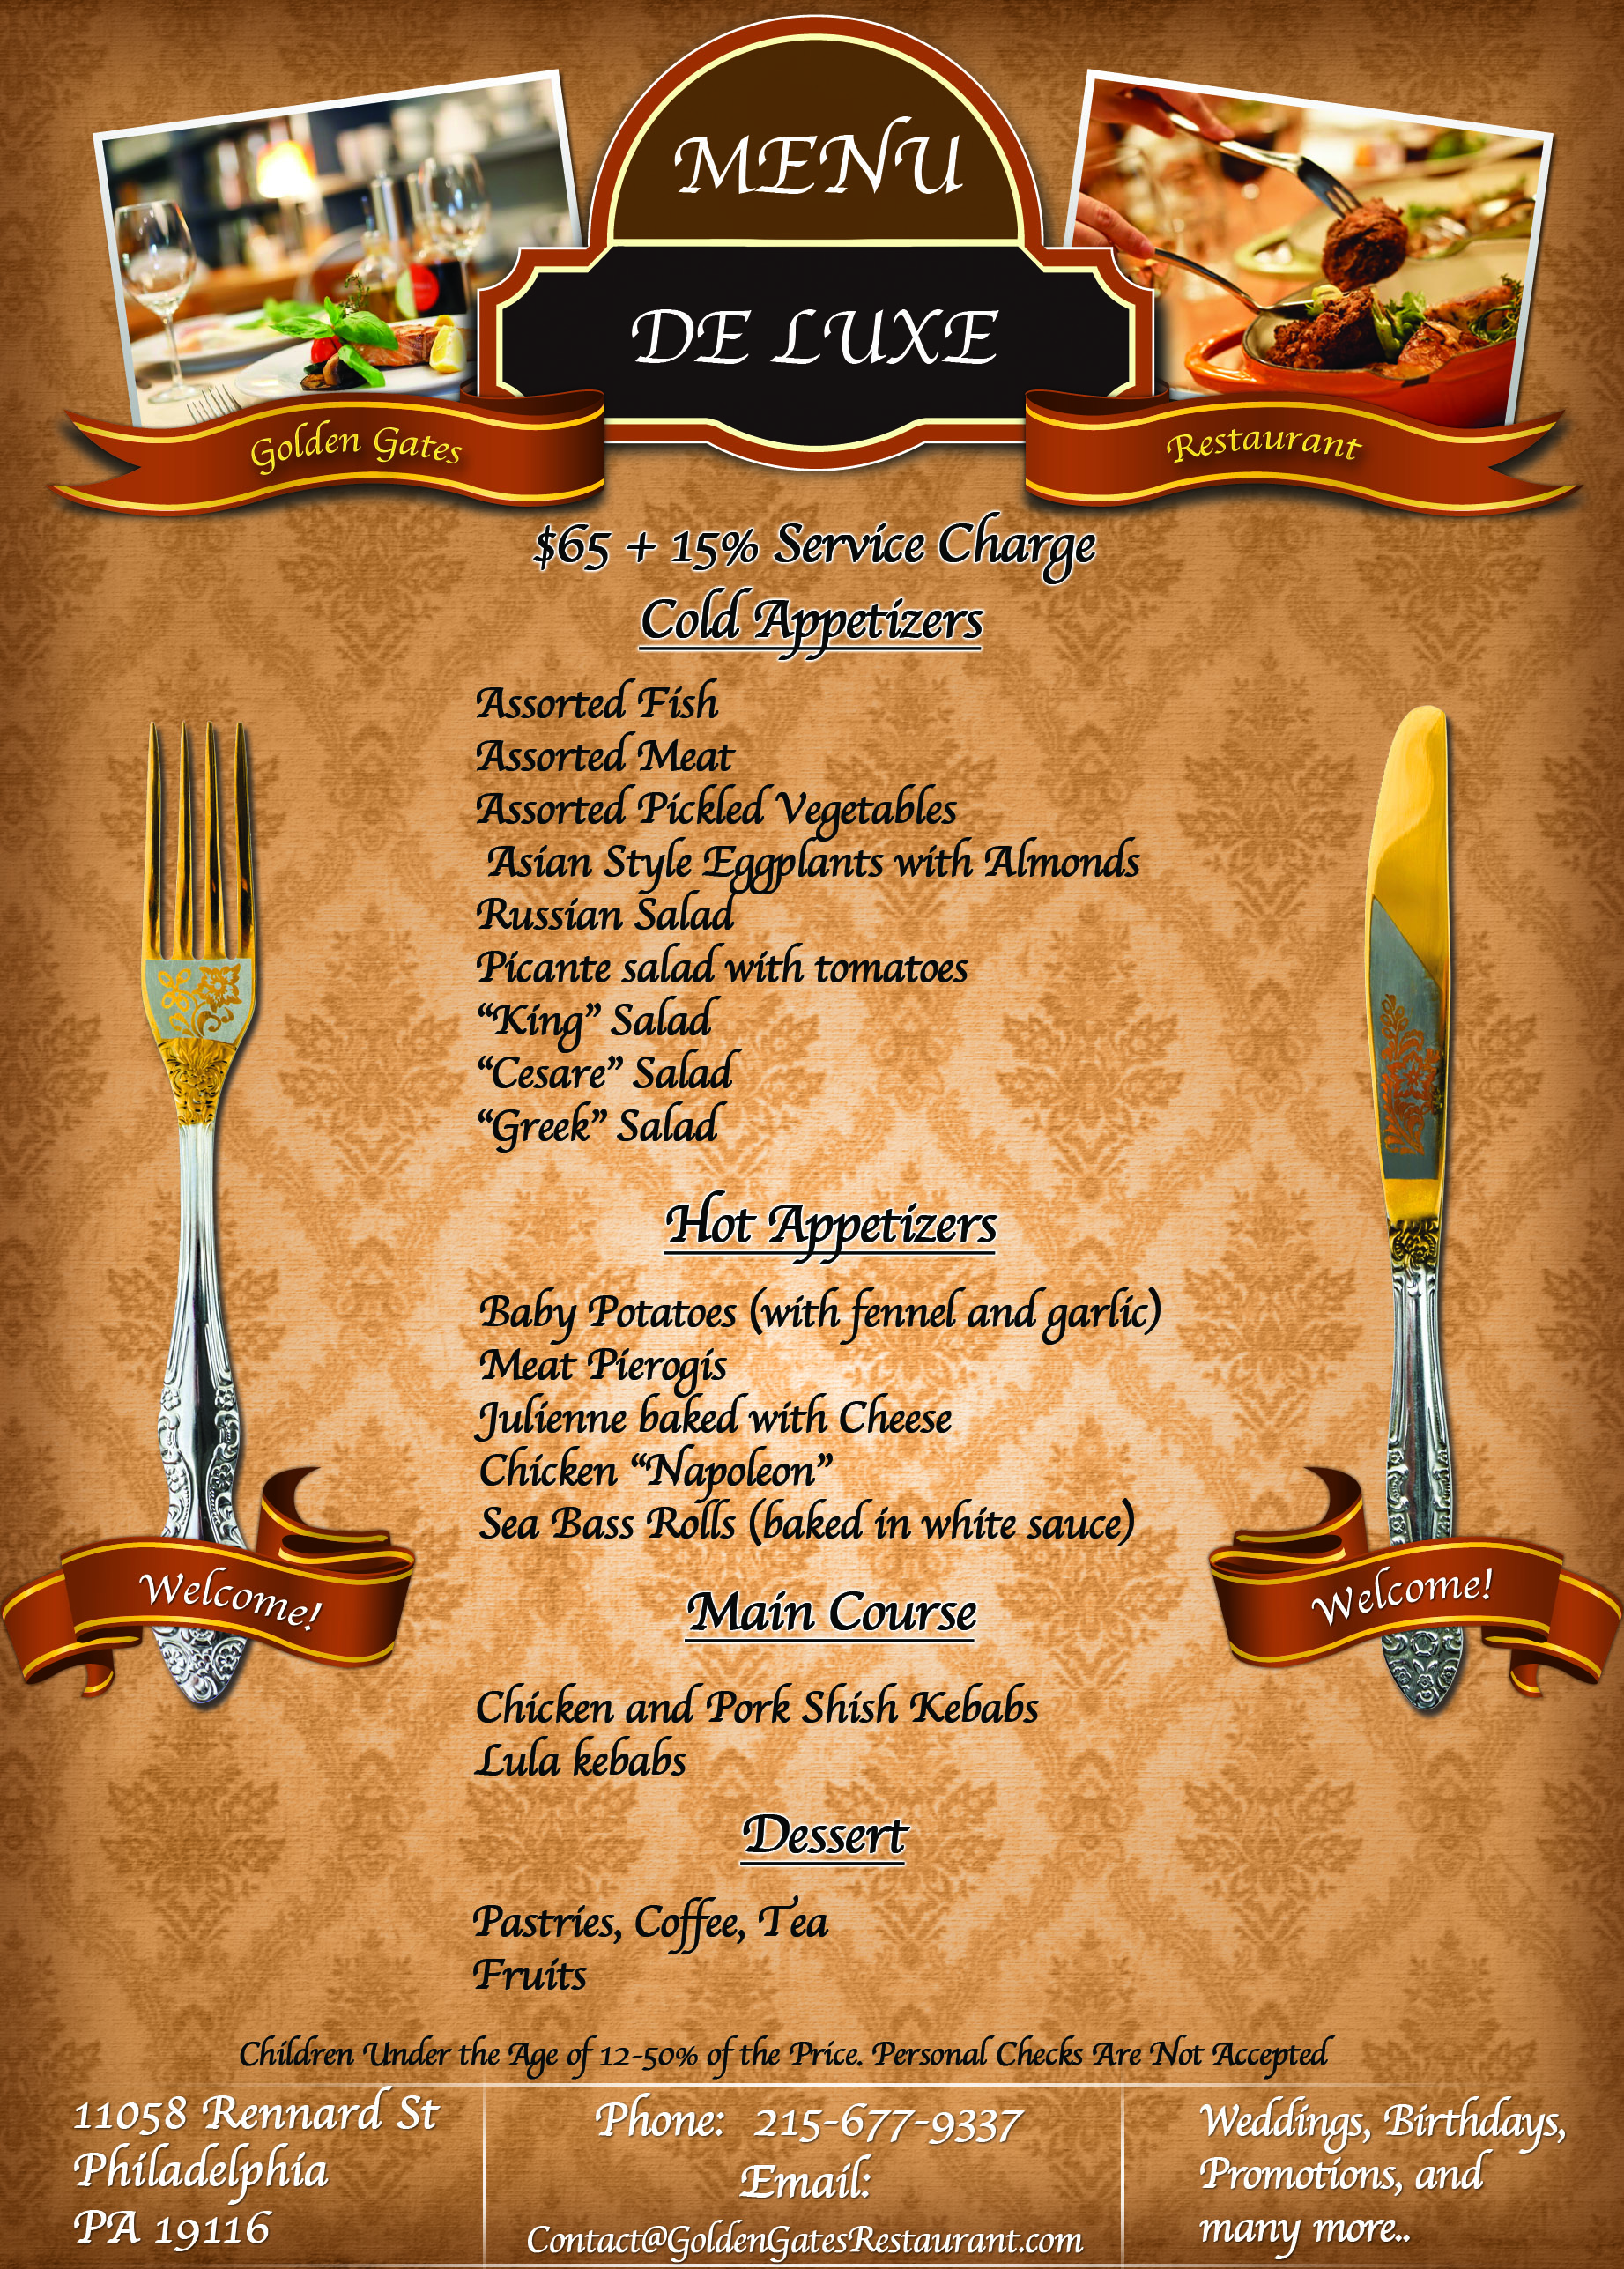 De Luxe Menu New 2